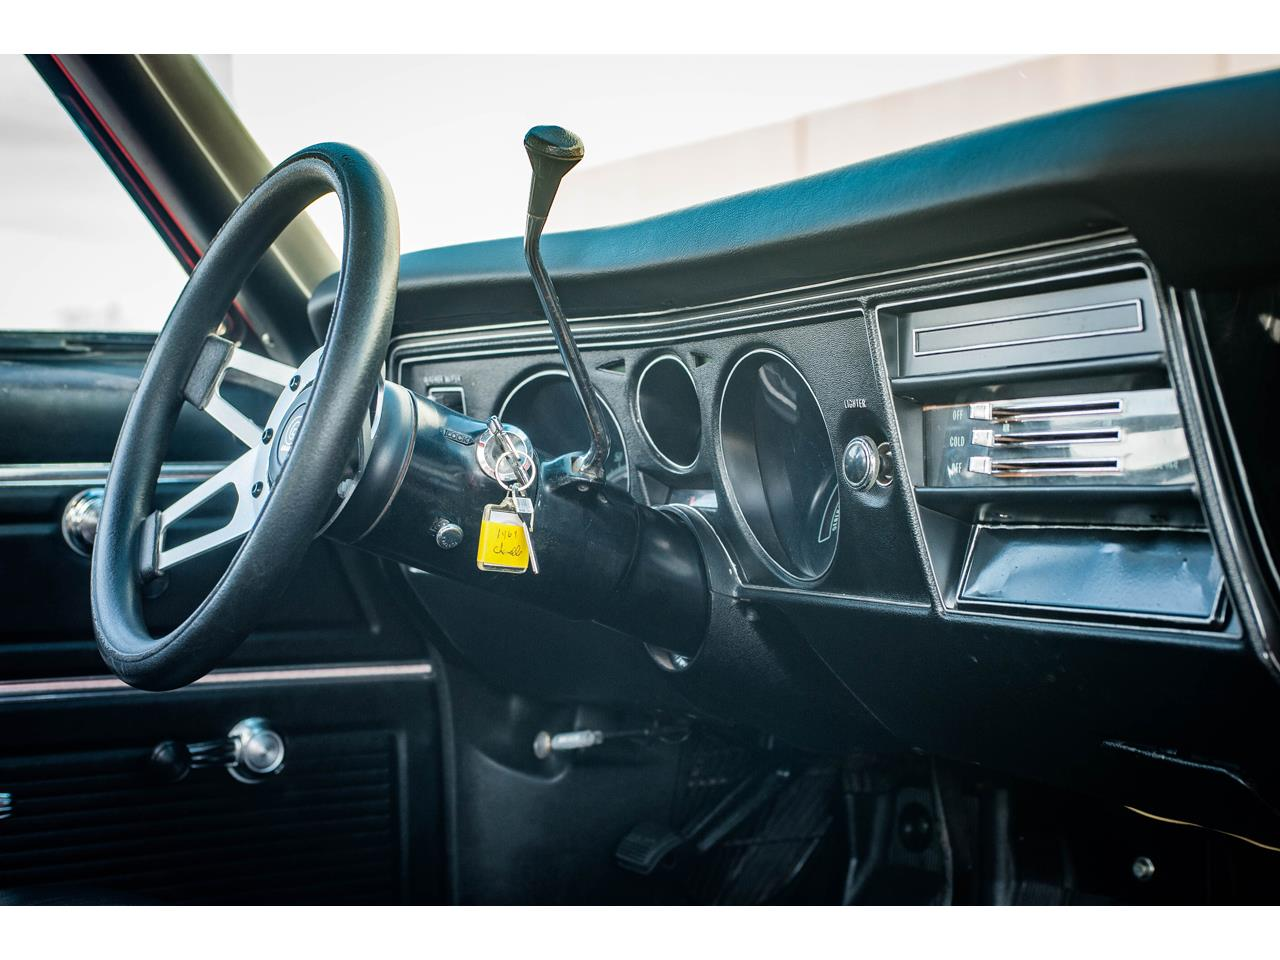 1969 Chevrolet Chevelle (CC-1227605) for sale in O'Fallon, Illinois